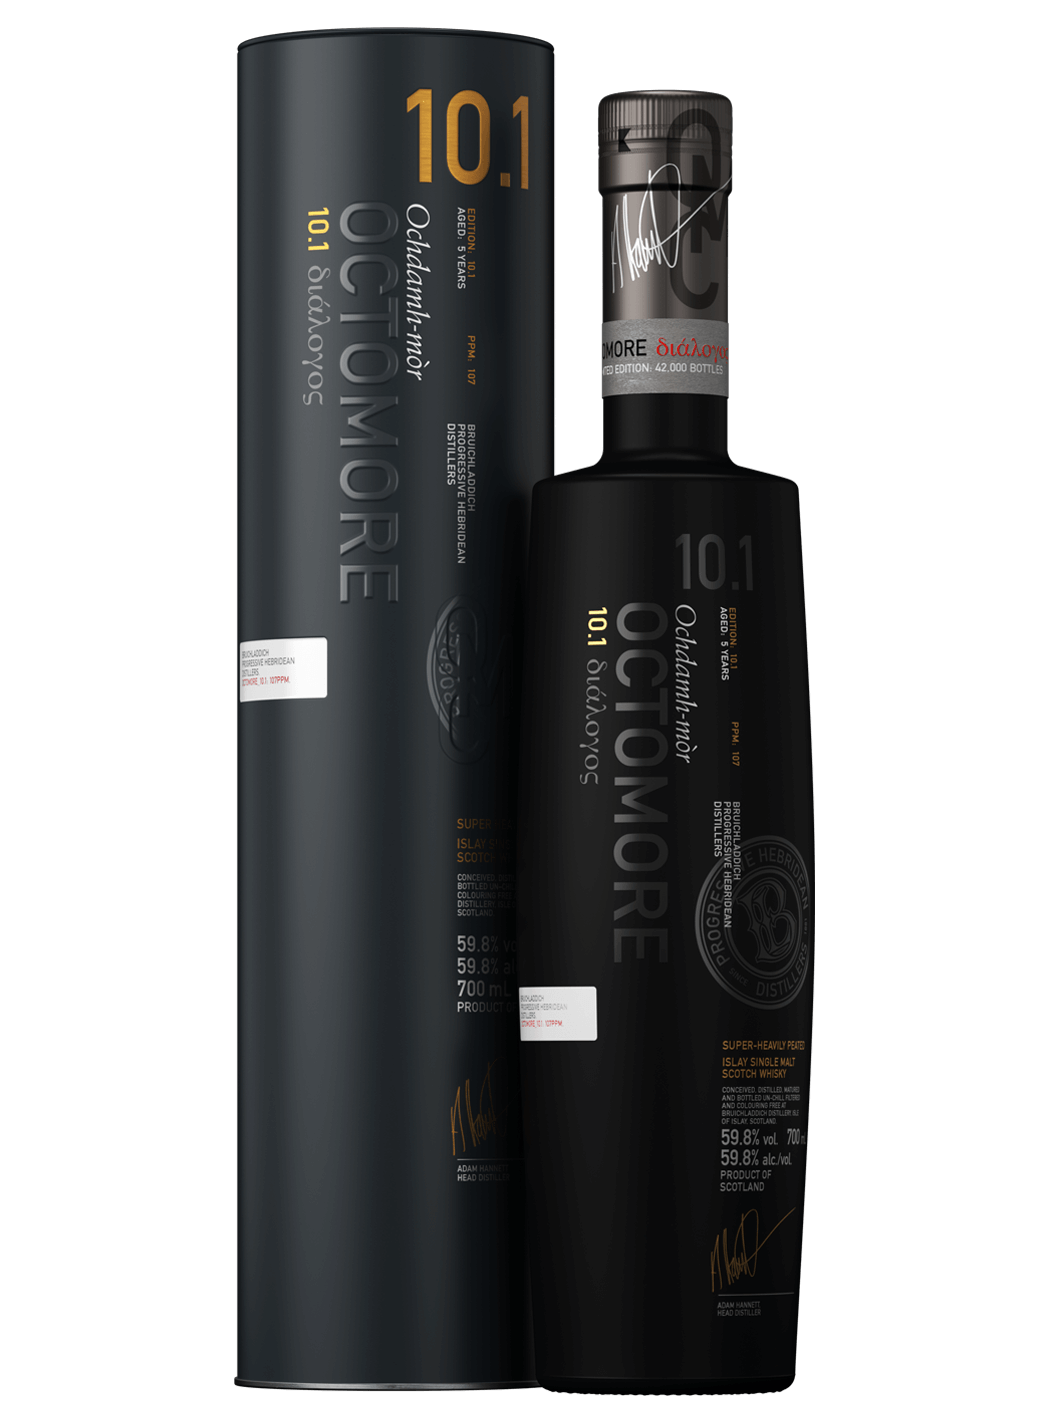 Octomore 10.1